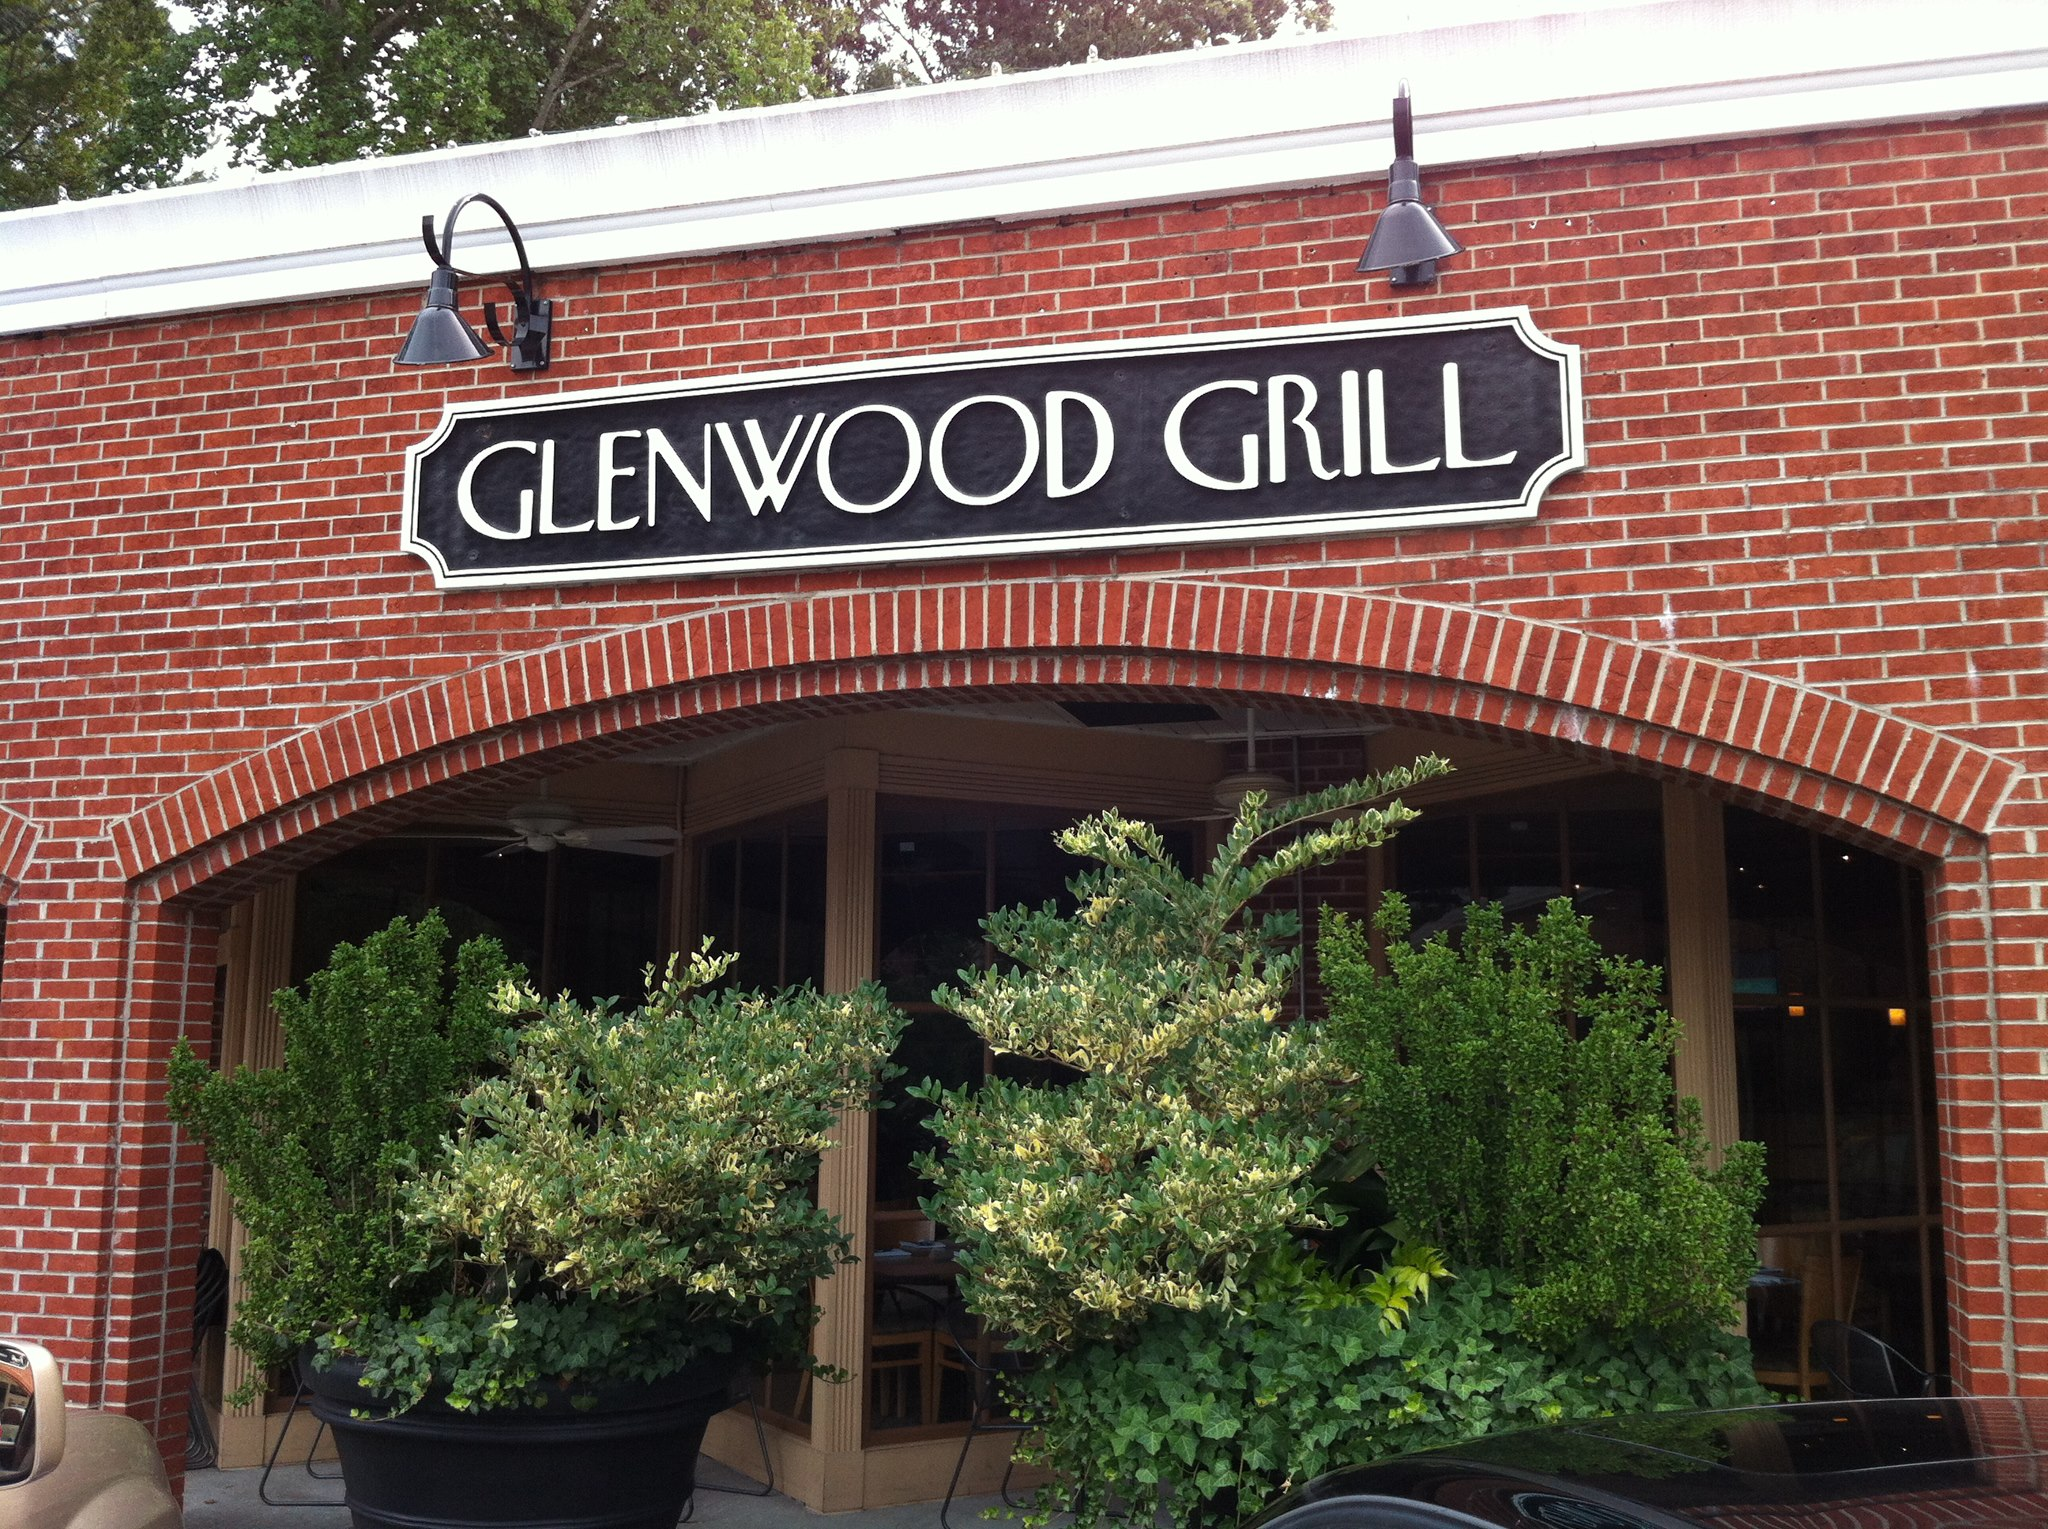 Glenwood Grill photo